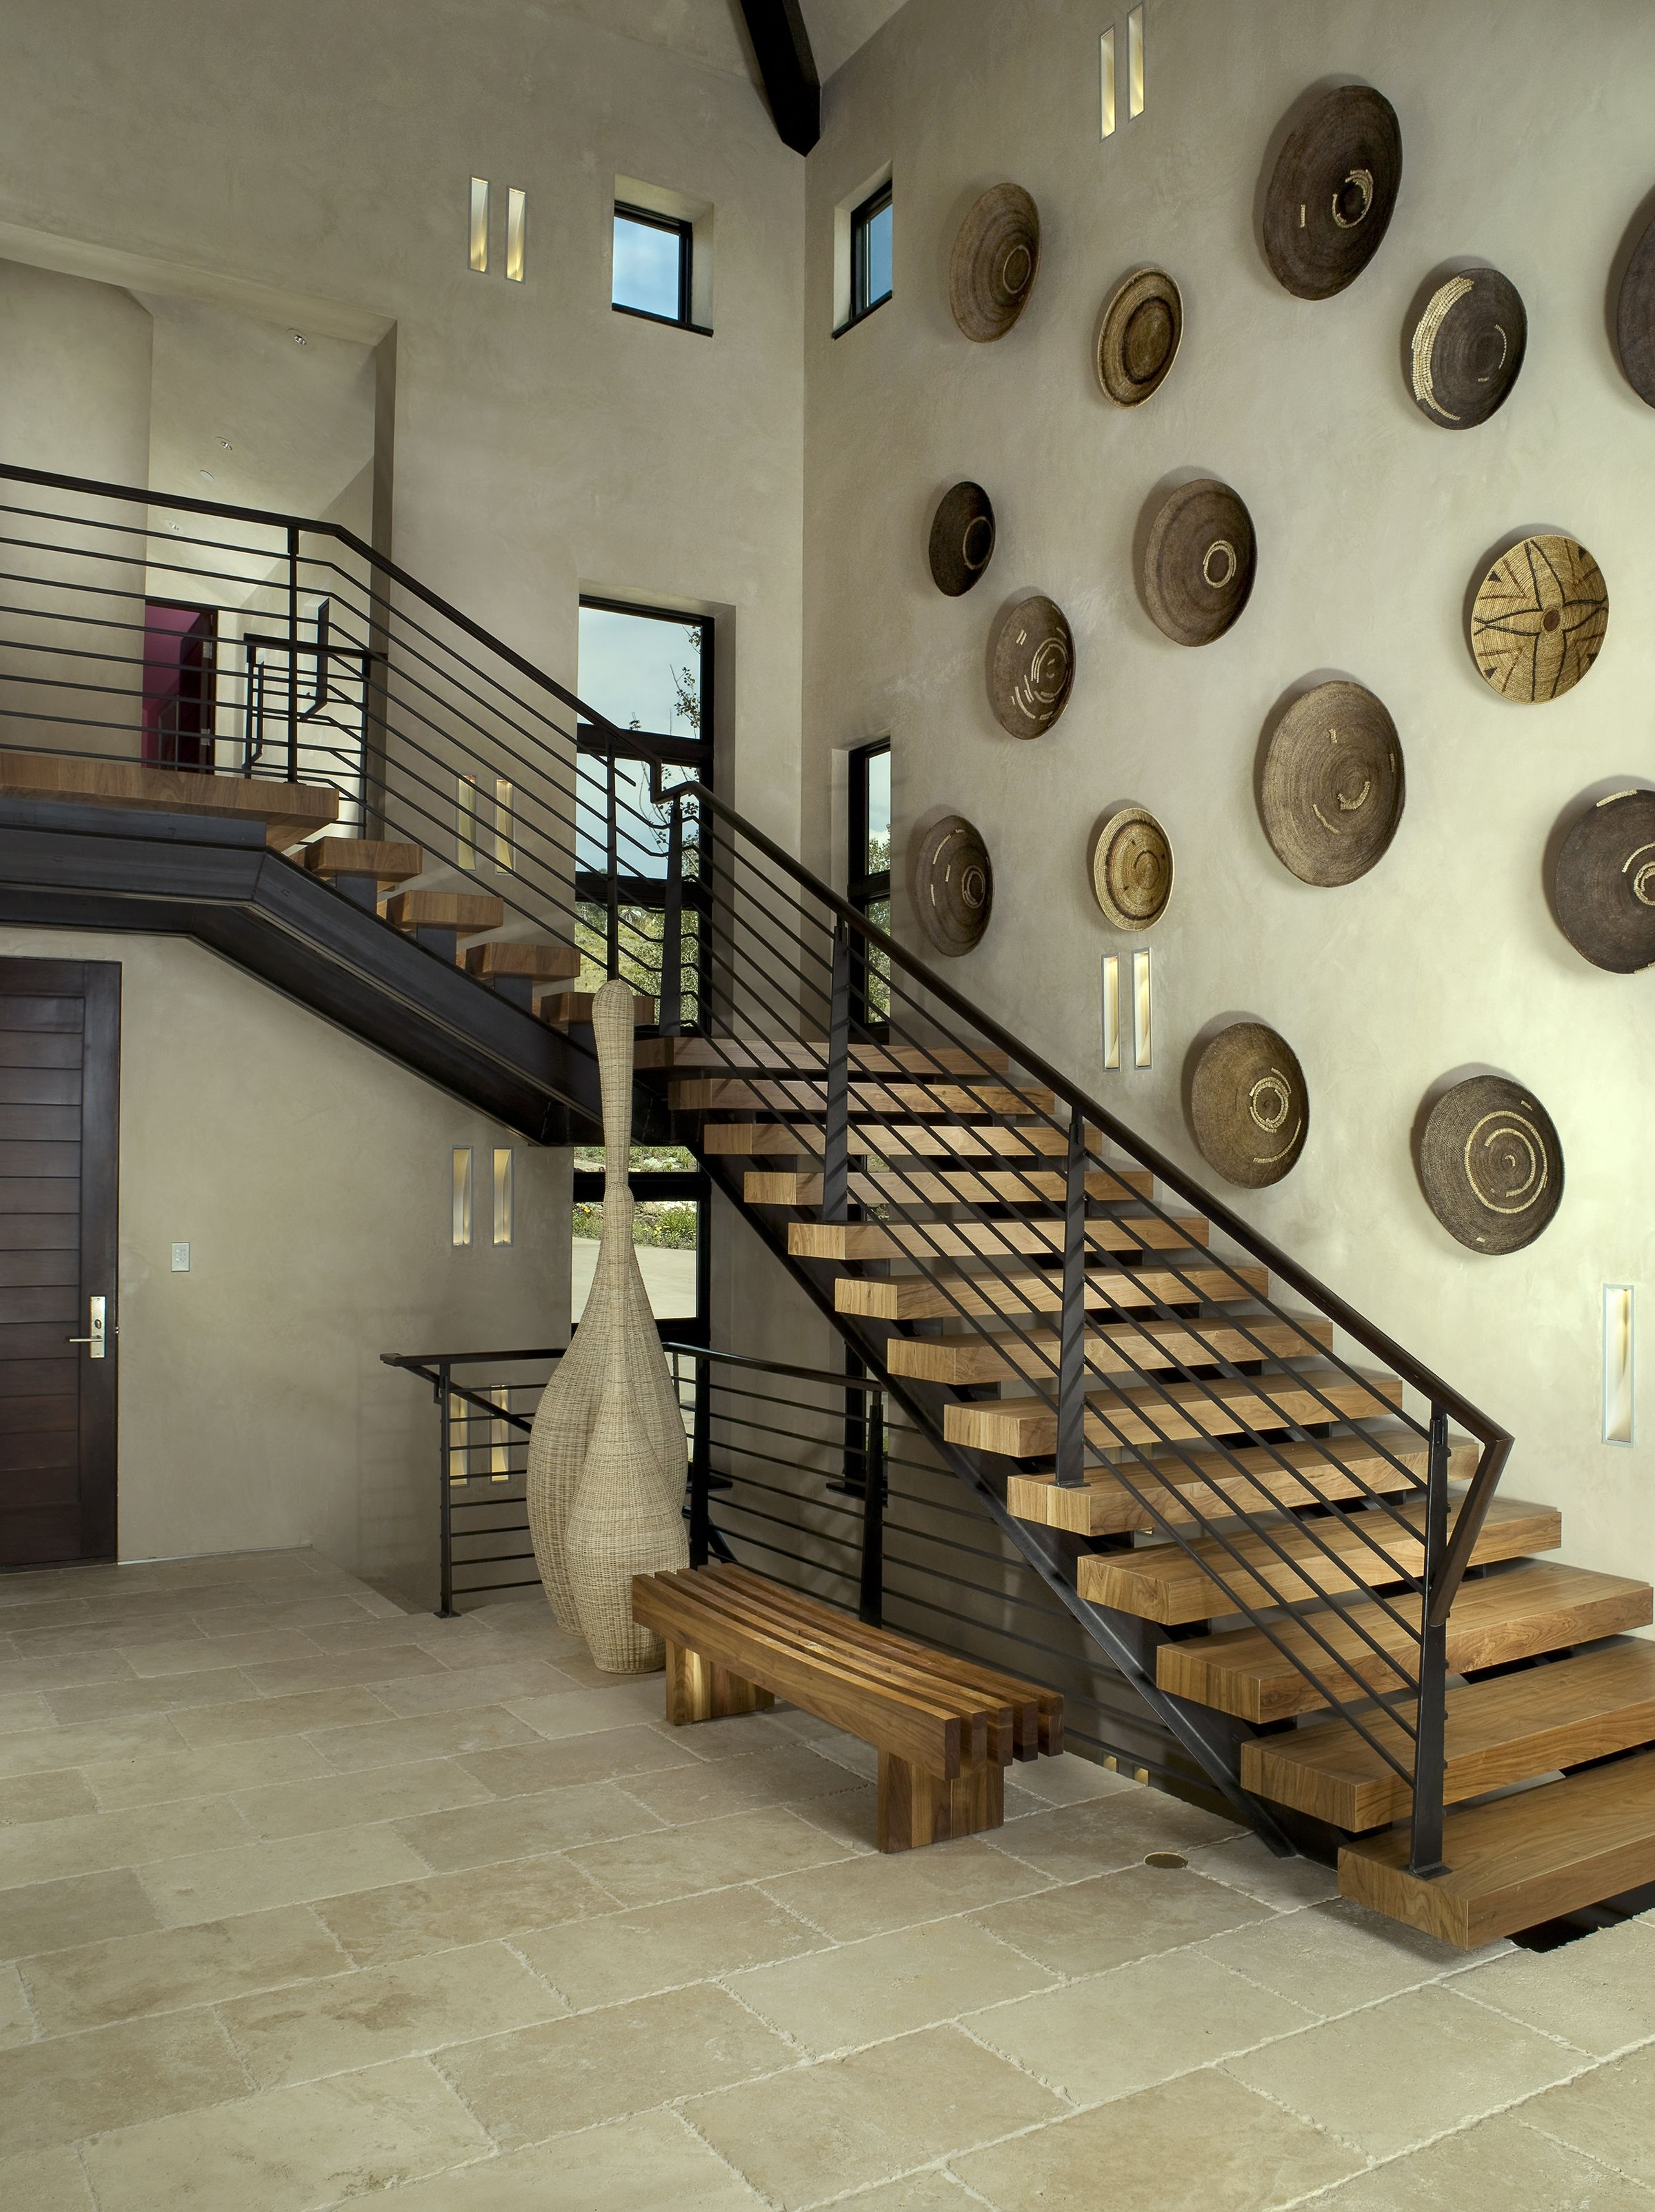 27 Stylish Staircase Decorating Ideas How To Decorate Stairways | Wall Painting Designs For Staircase | Side Wall | Upstairs | Art Staircase | Boy | Creative